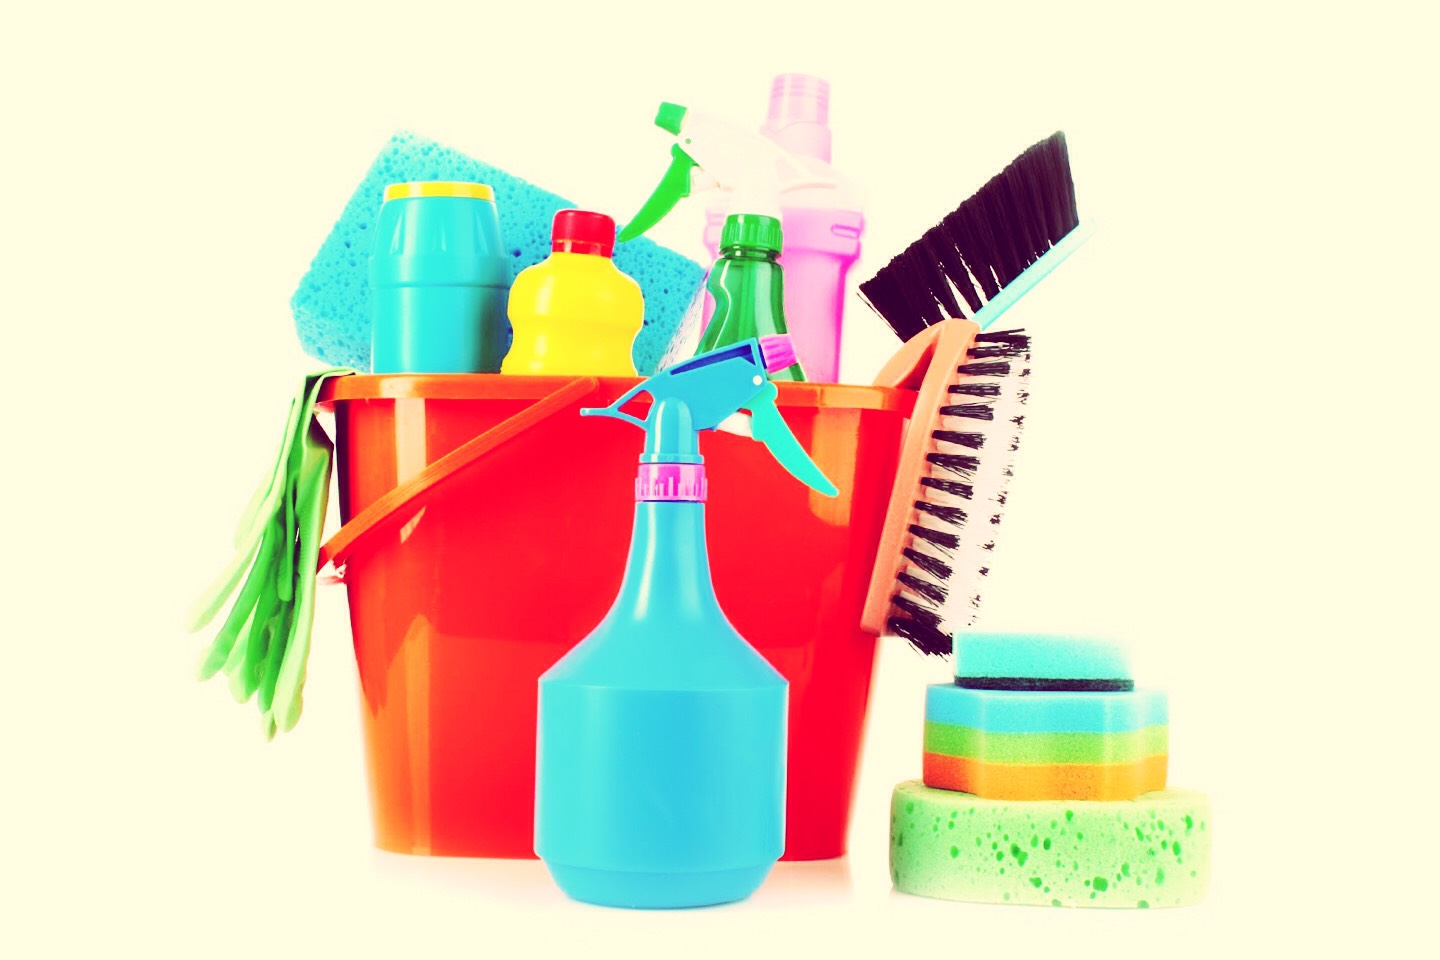 Clean!  For relatives, elderly neighbours, small shops or businesses near where you live. Cleaning pays between £8-£15 per hour in England. Whether you need to just give someone's home a quick spruce up or they have a nasty oven.  Cleaning is great exercise too so stick your music on and get moving!